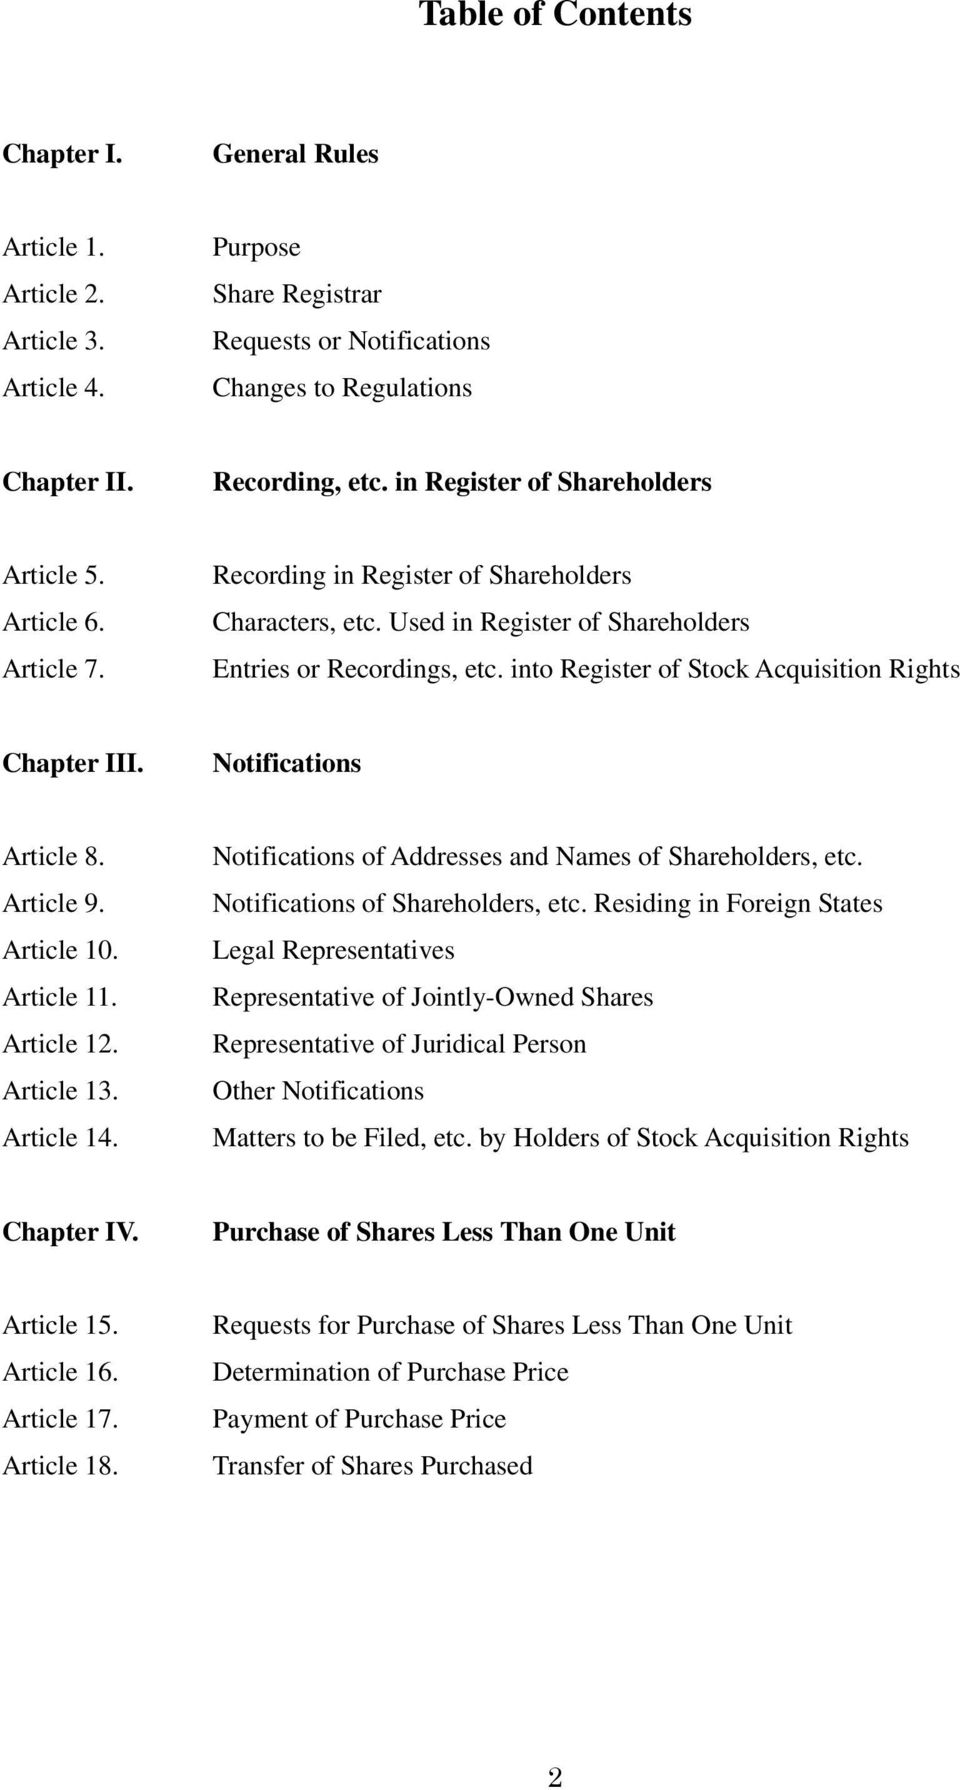 into Register of Stock Acquisition Rights Chapter III. Notifications Article 8. Article 9. Article 10. Article 11. Article 12. Article 13. Article 14.